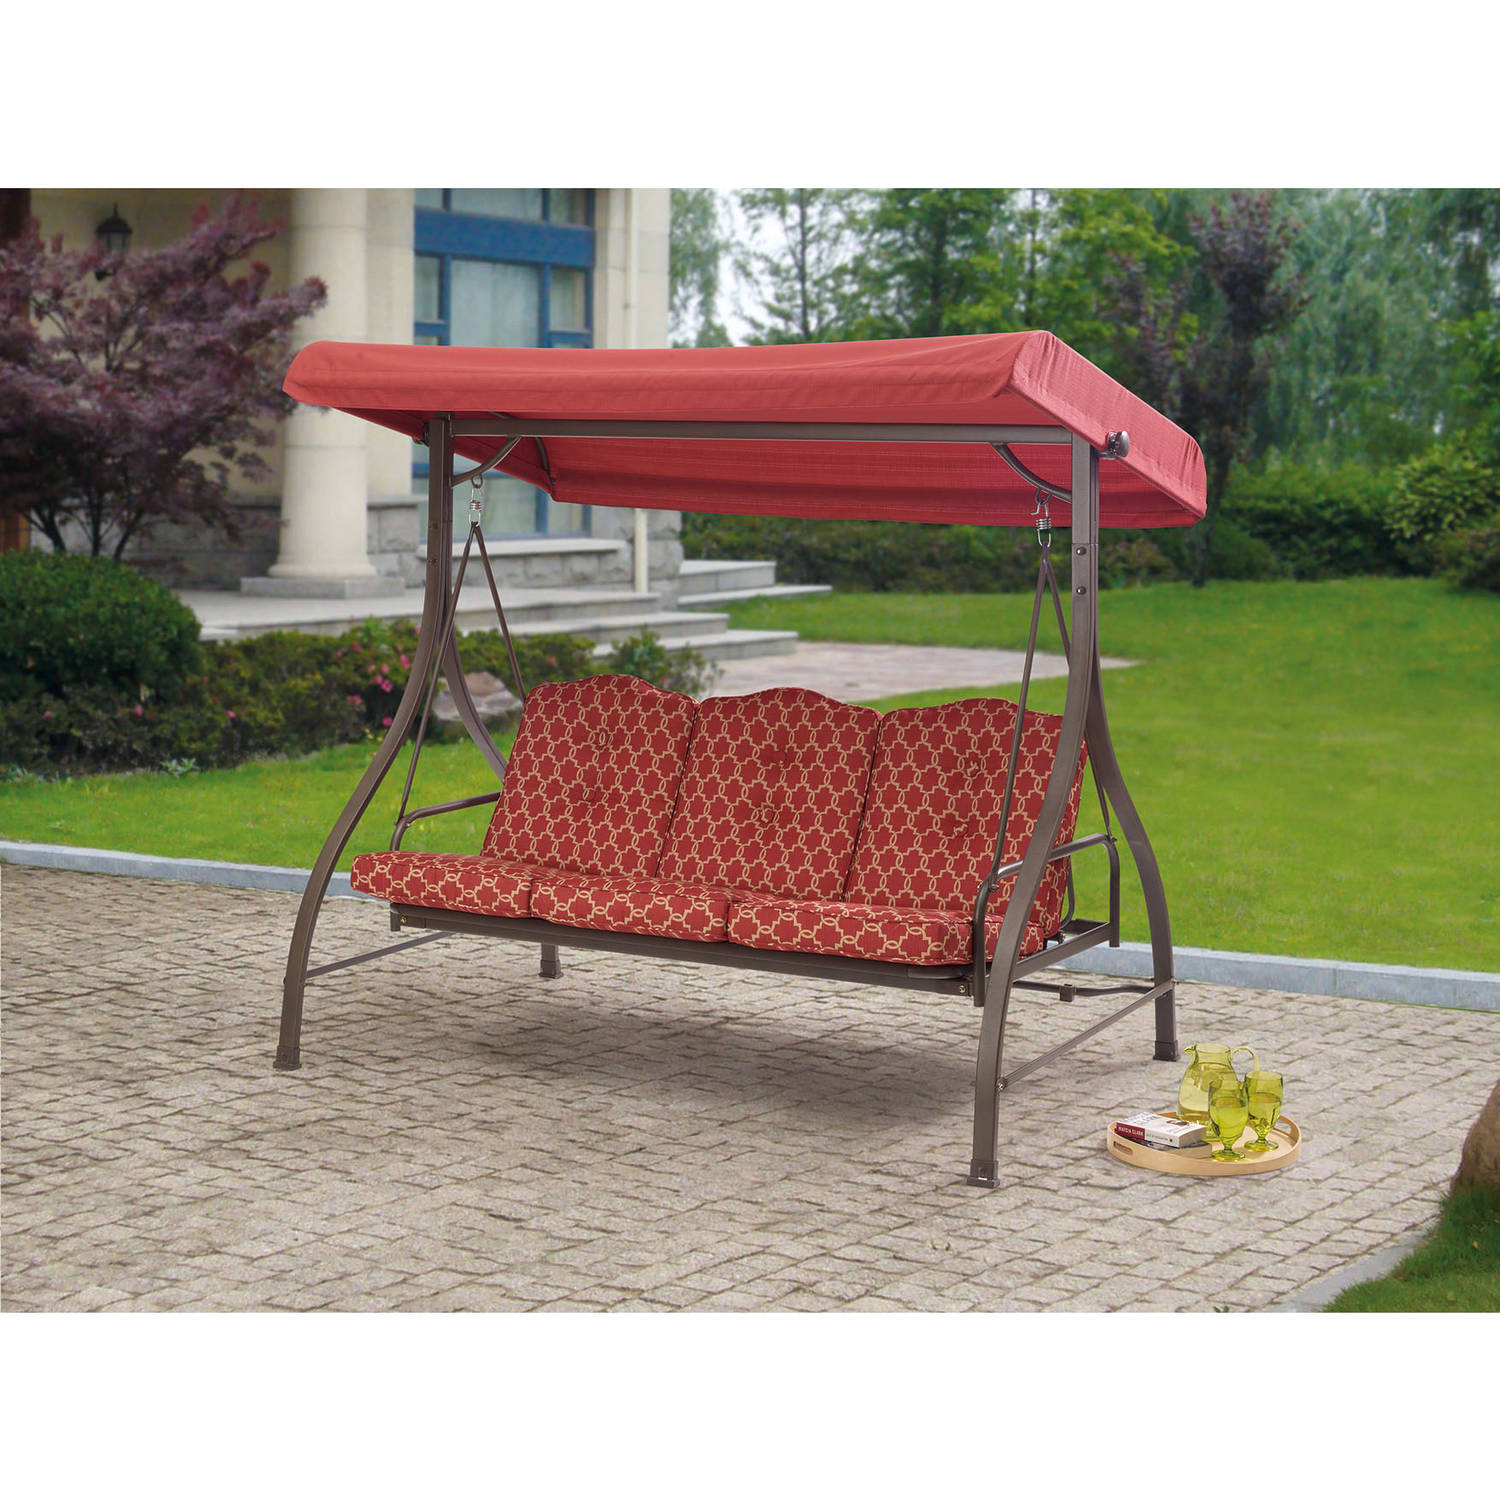 Outdoor: Cozy Outdoor Swing Cushions For Your Patio In 3 Seats Patio Canopy Swing Gliders Hammock Cushioned Steel Frame (Image 20 of 25)